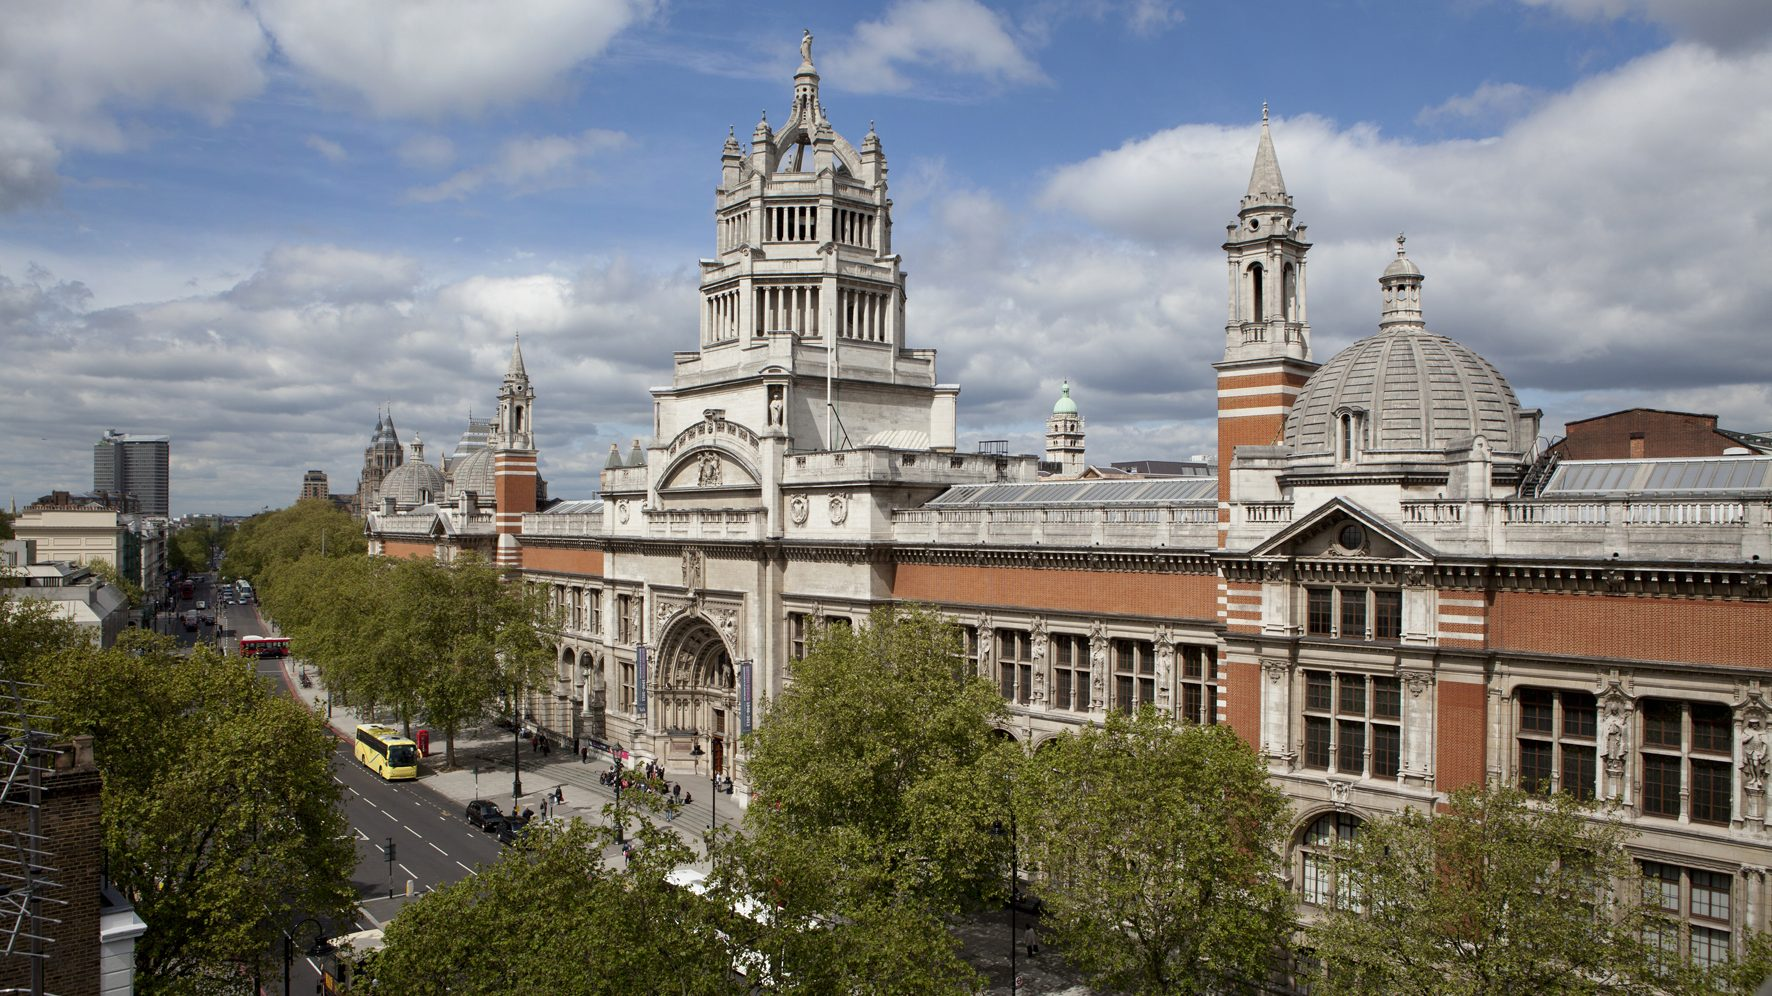 The V&A is consulting on redundancies across its collections division